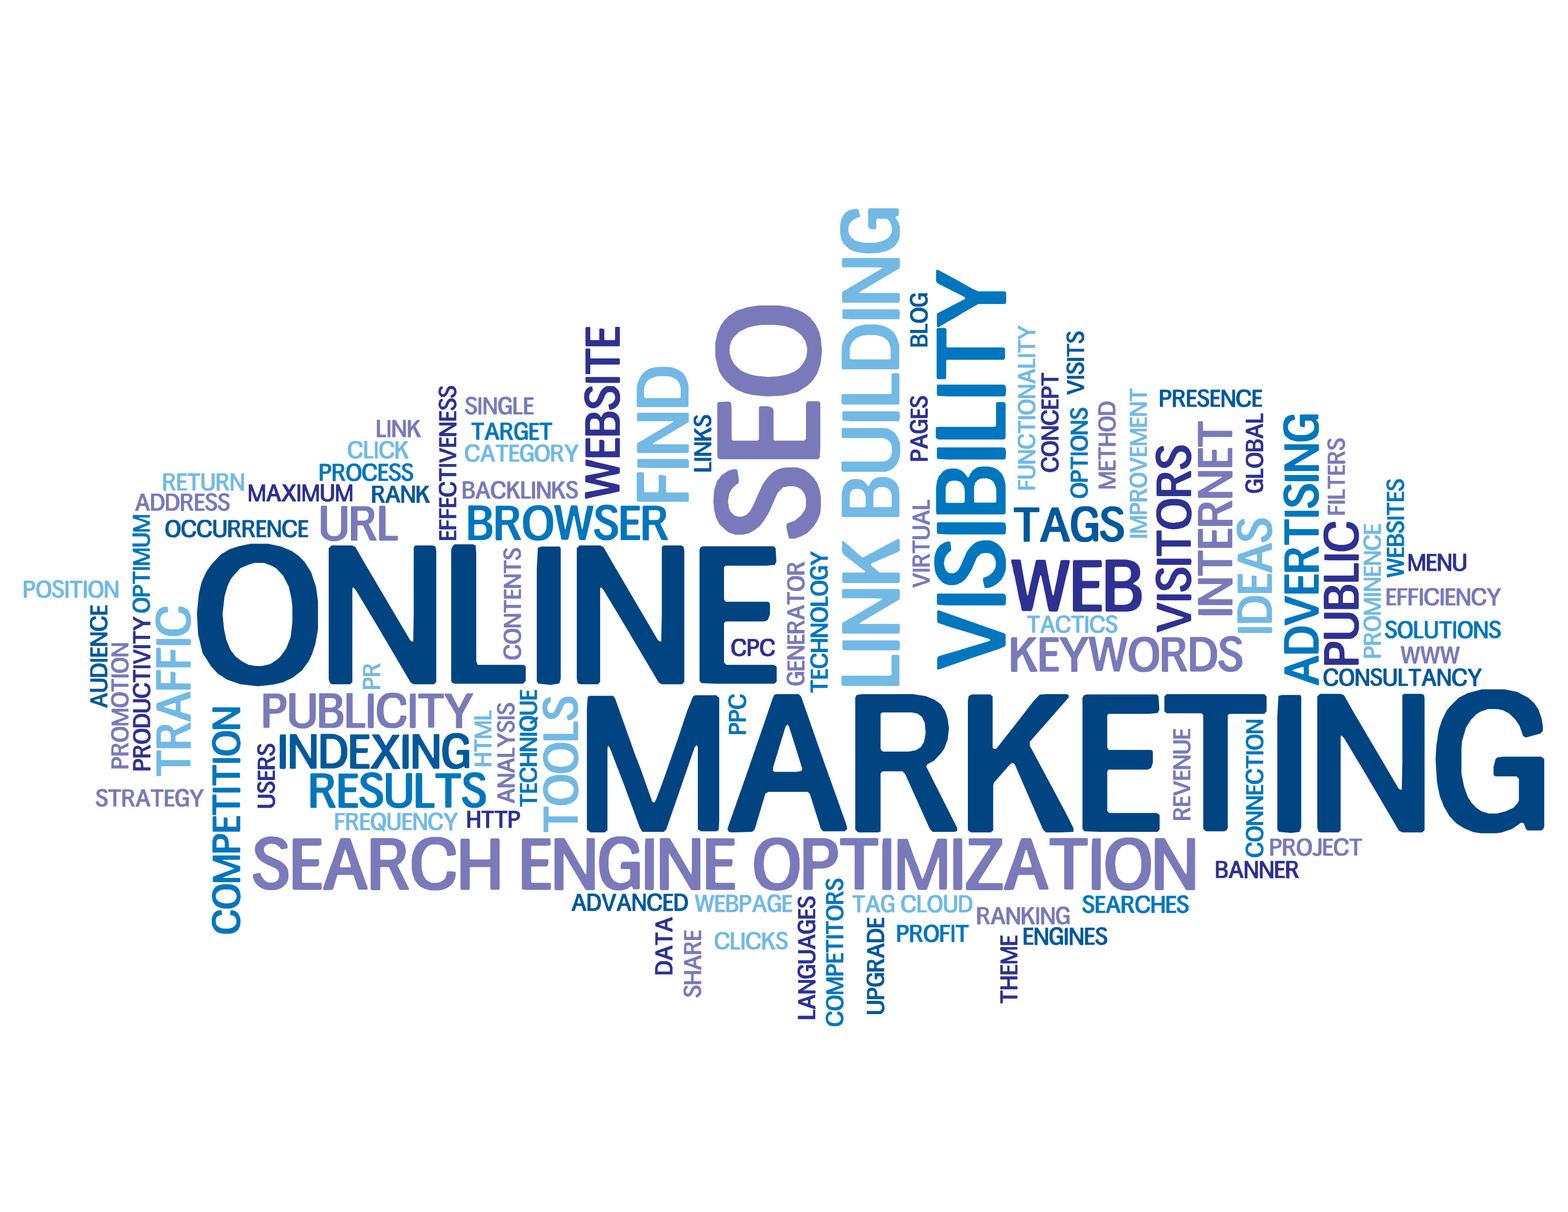 ONLINE MARKETING Tag Cloud (search optimisation link building)